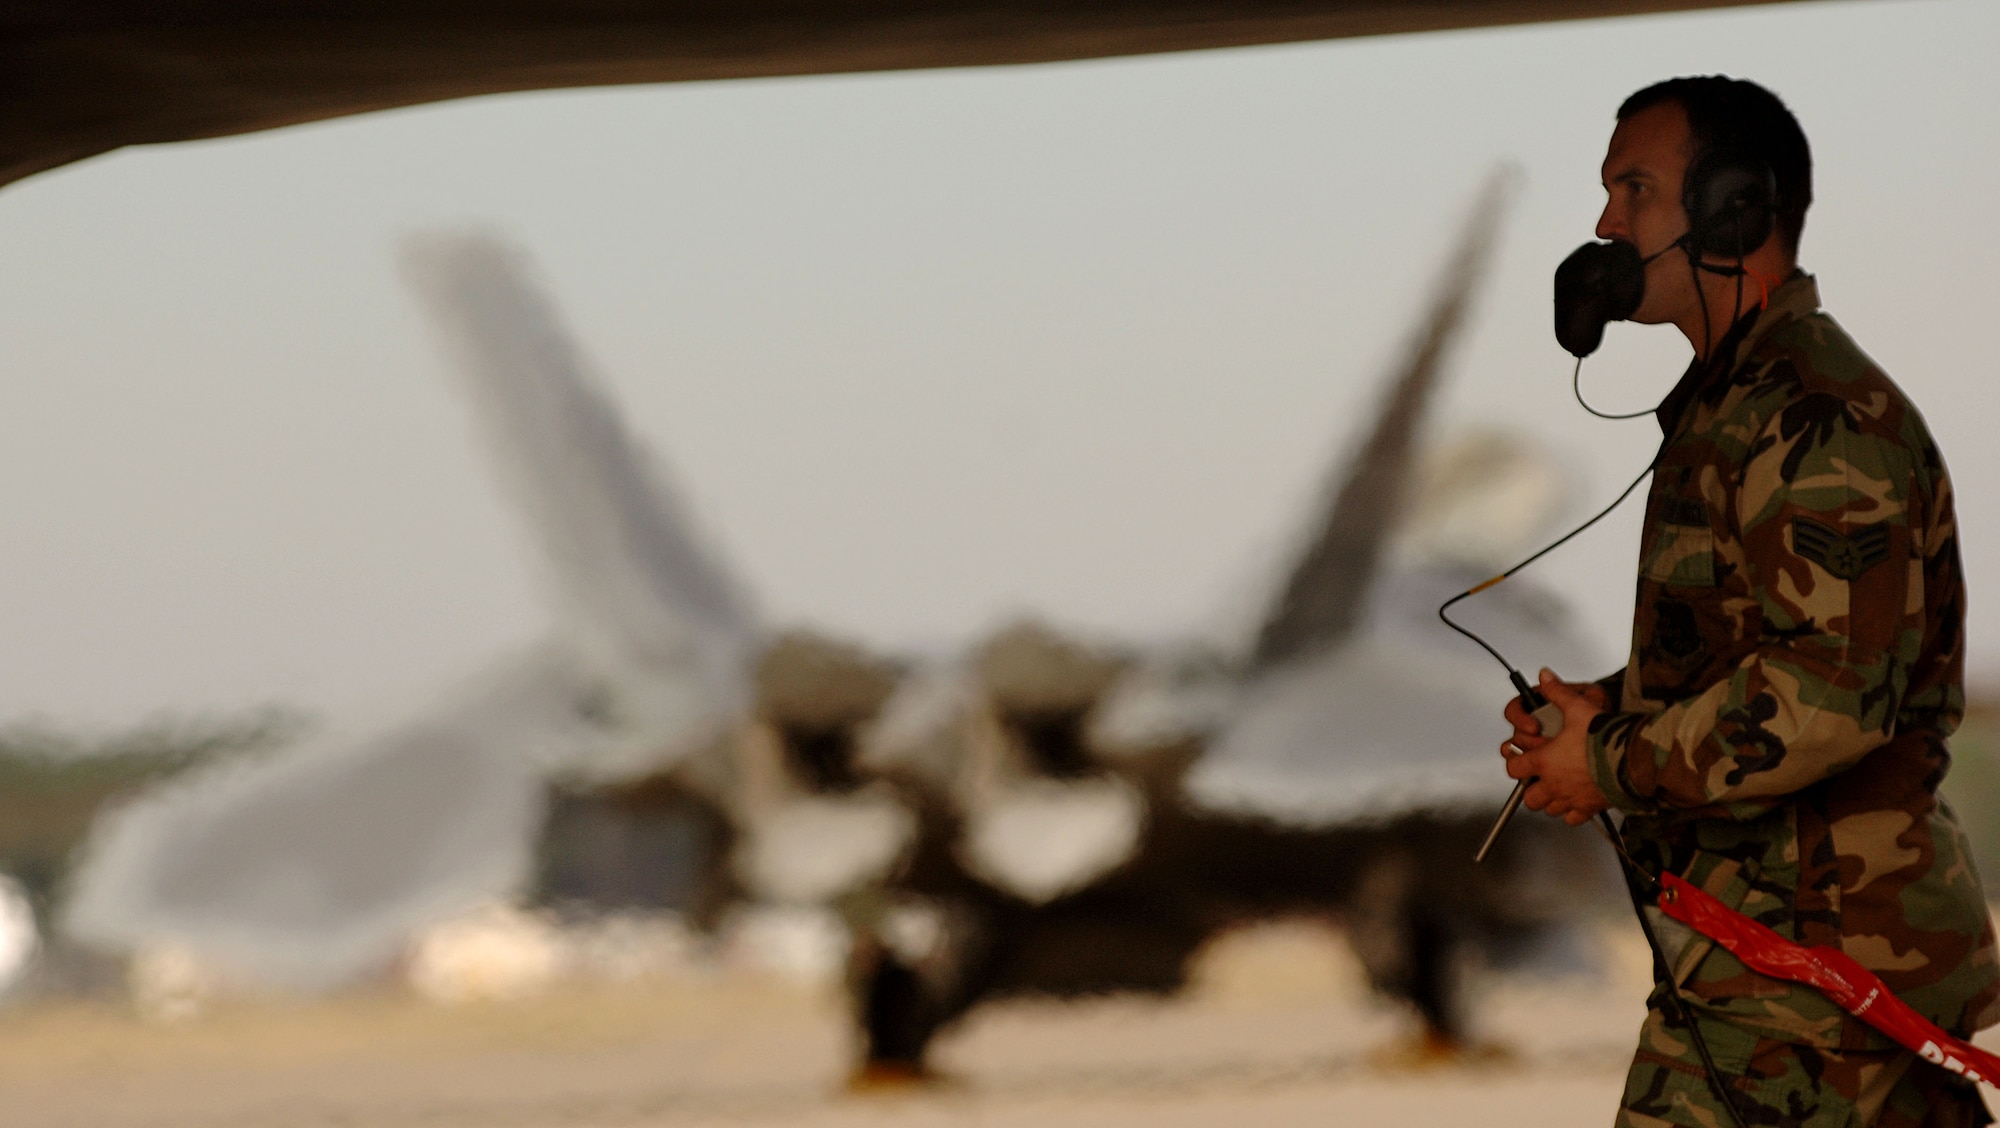 Senior Airman Joseph Vanord, a dedicated crew chief with the 94th Fighter Squadron at Langley Air Force Base in Virginia, begins shut downs procedures on a F-22A Raptor piloted by 1st Fighter Wing Commander Brig. Gen. Burton Field on Jan. 19, 2007. General Field's delivery of the 40th F-22A Raptor from the factory at Lockheed Martin in Marietta, Ga., to the 1st Fighter Wing at Langley AFB marks the completion of delivery from factory to the installation. (USAF Photo by Staff Sgt Samuel Rogers)